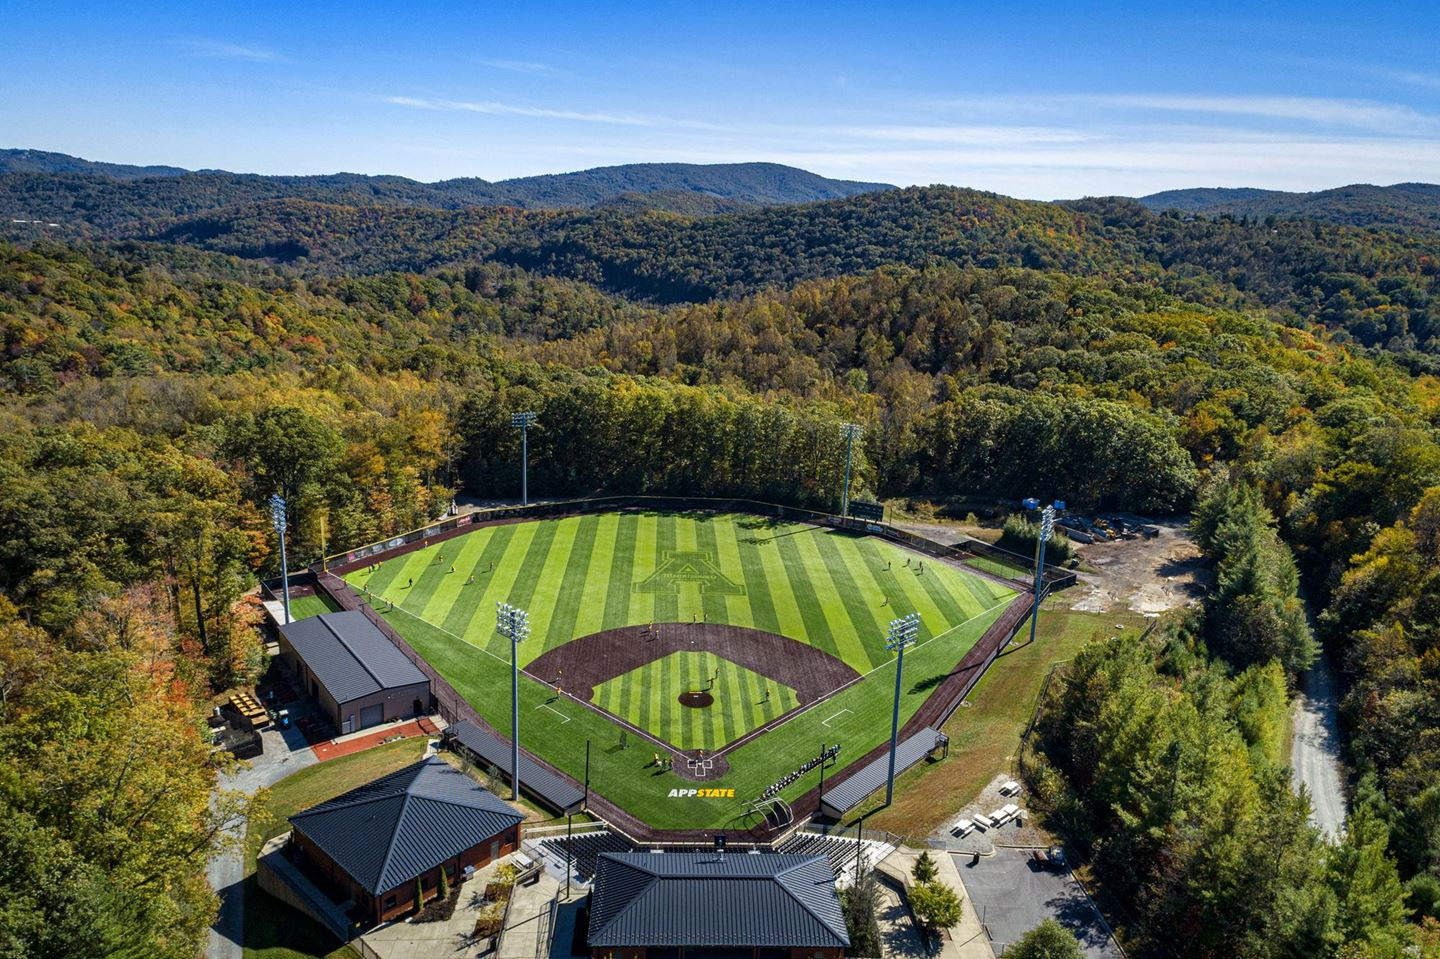 Update on Attendance at App State Spring Sporting Events